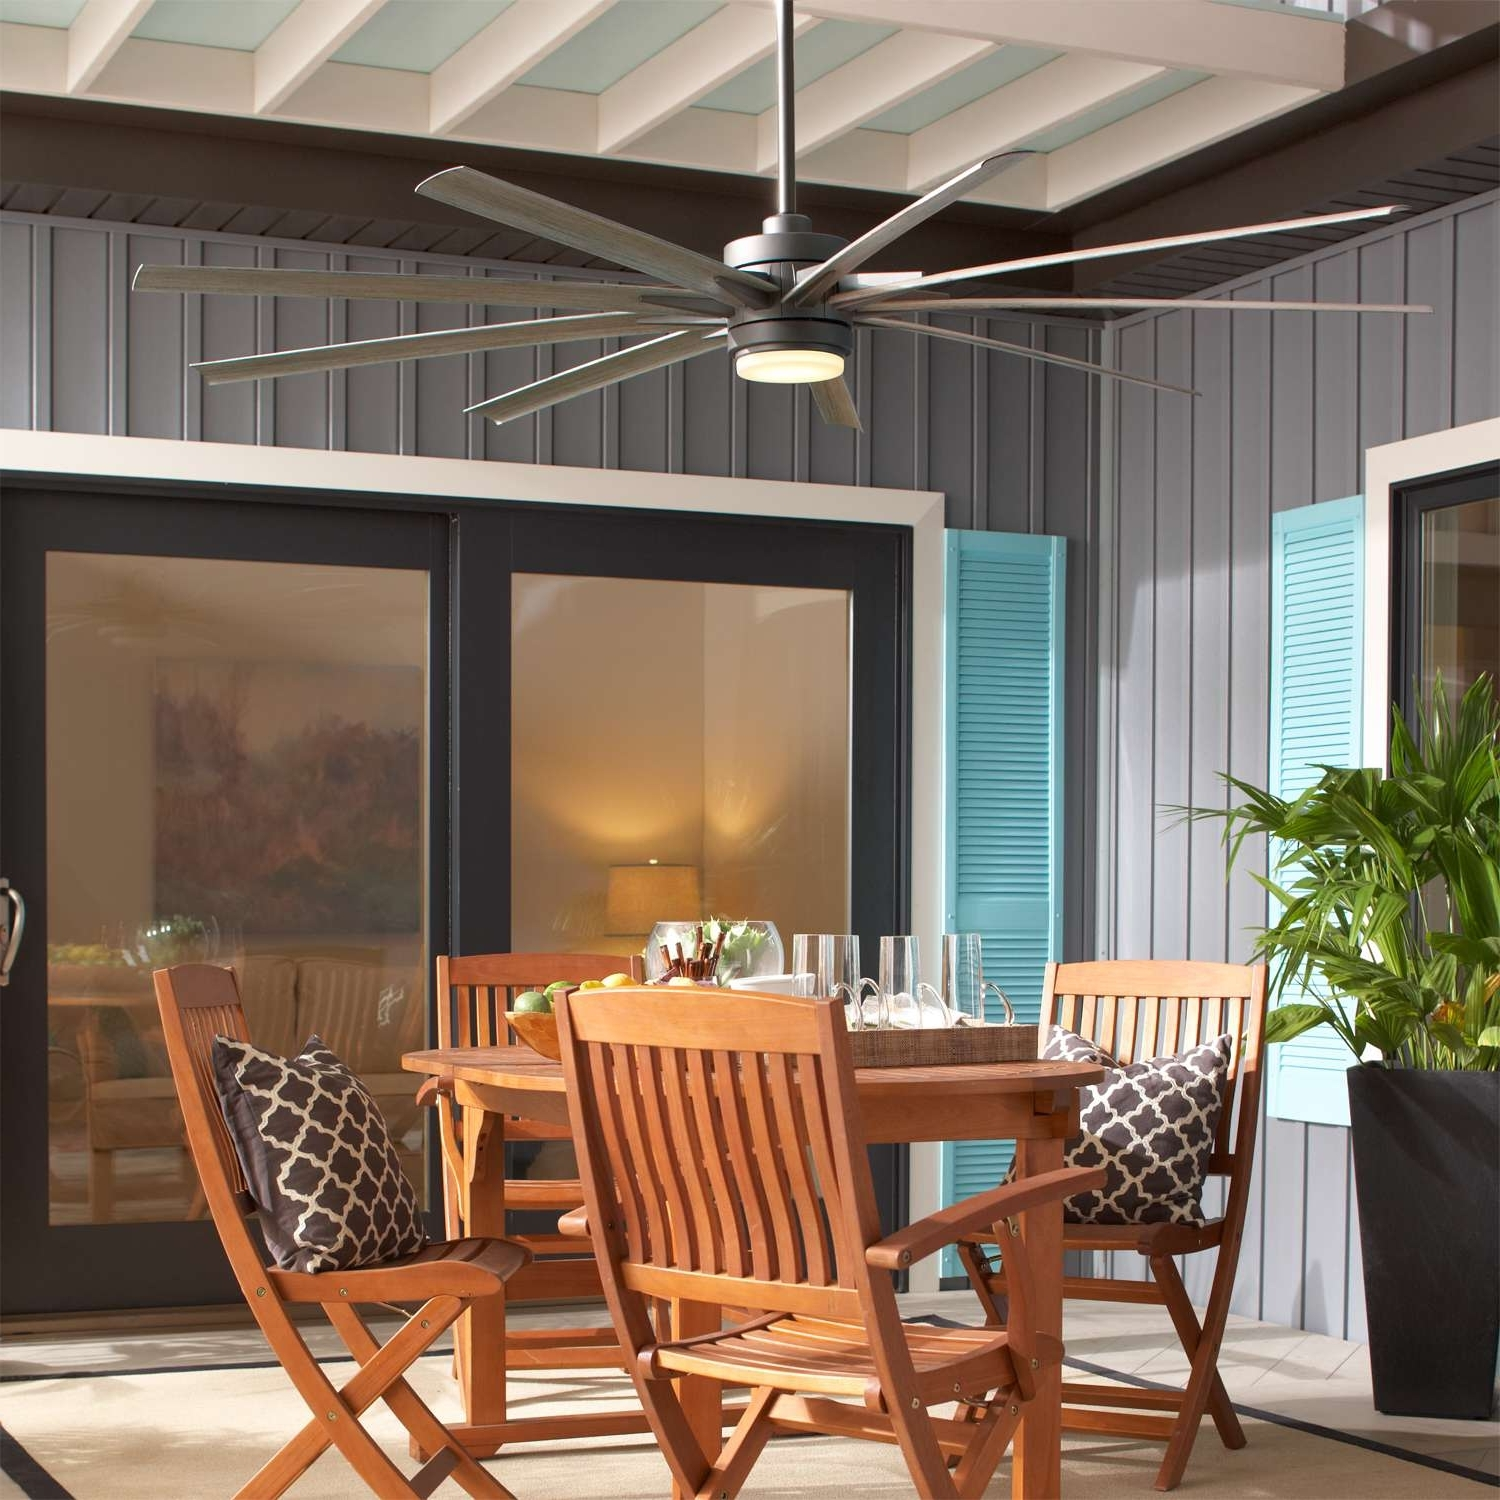 Outdoor Ceiling Fans For Screened Porches Inside Well Liked 4 Questions About Outdoor Ceiling Fans (View 5 of 20)